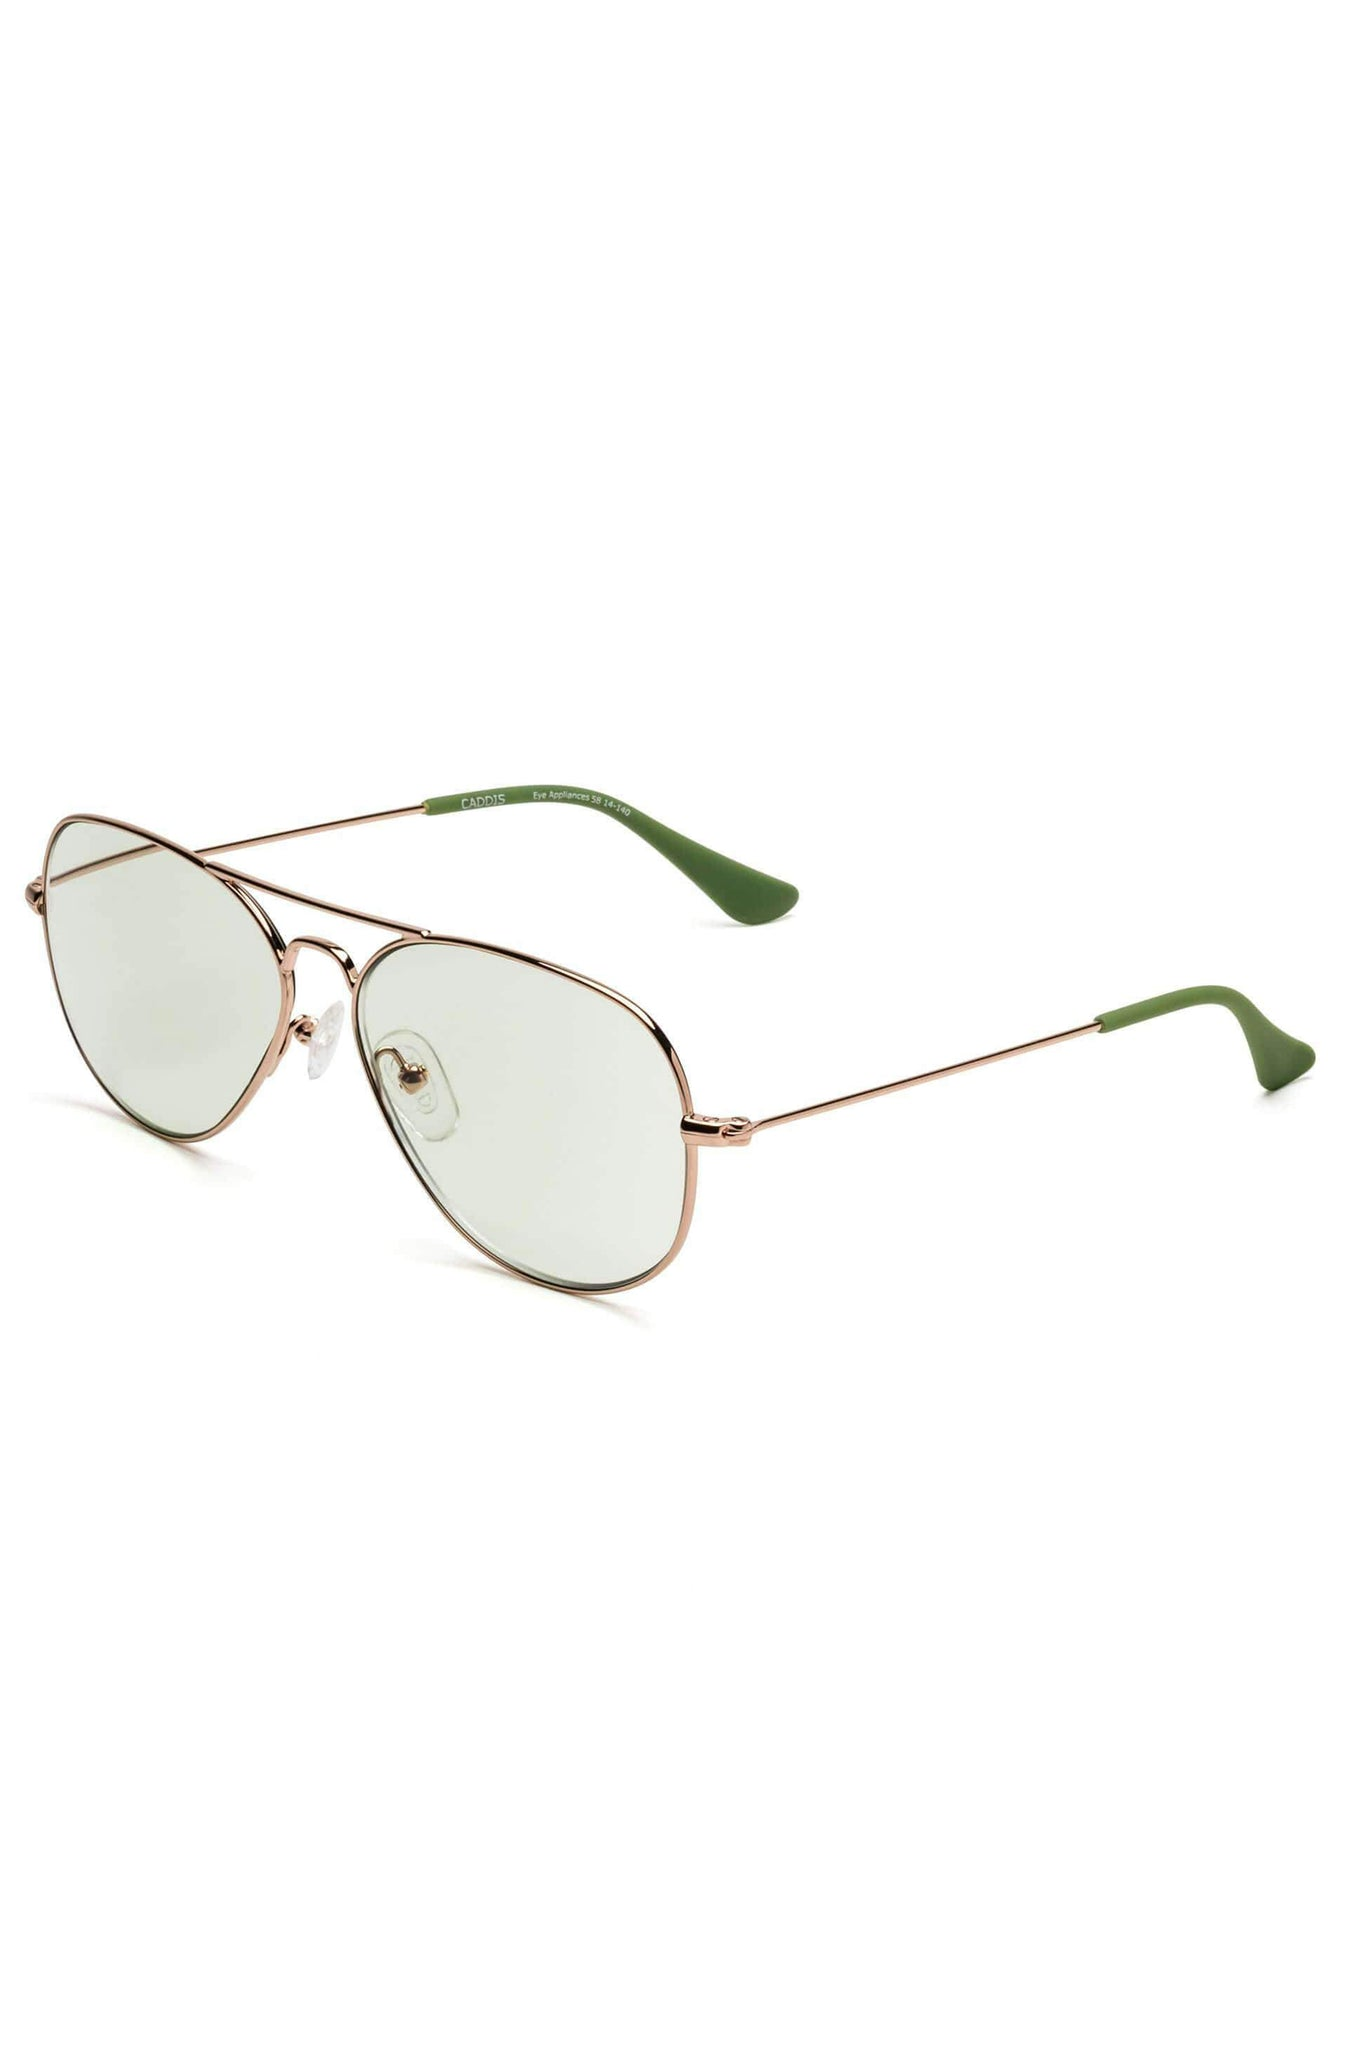 CADDIS - MABUHAY reader glasses, polished rose gold